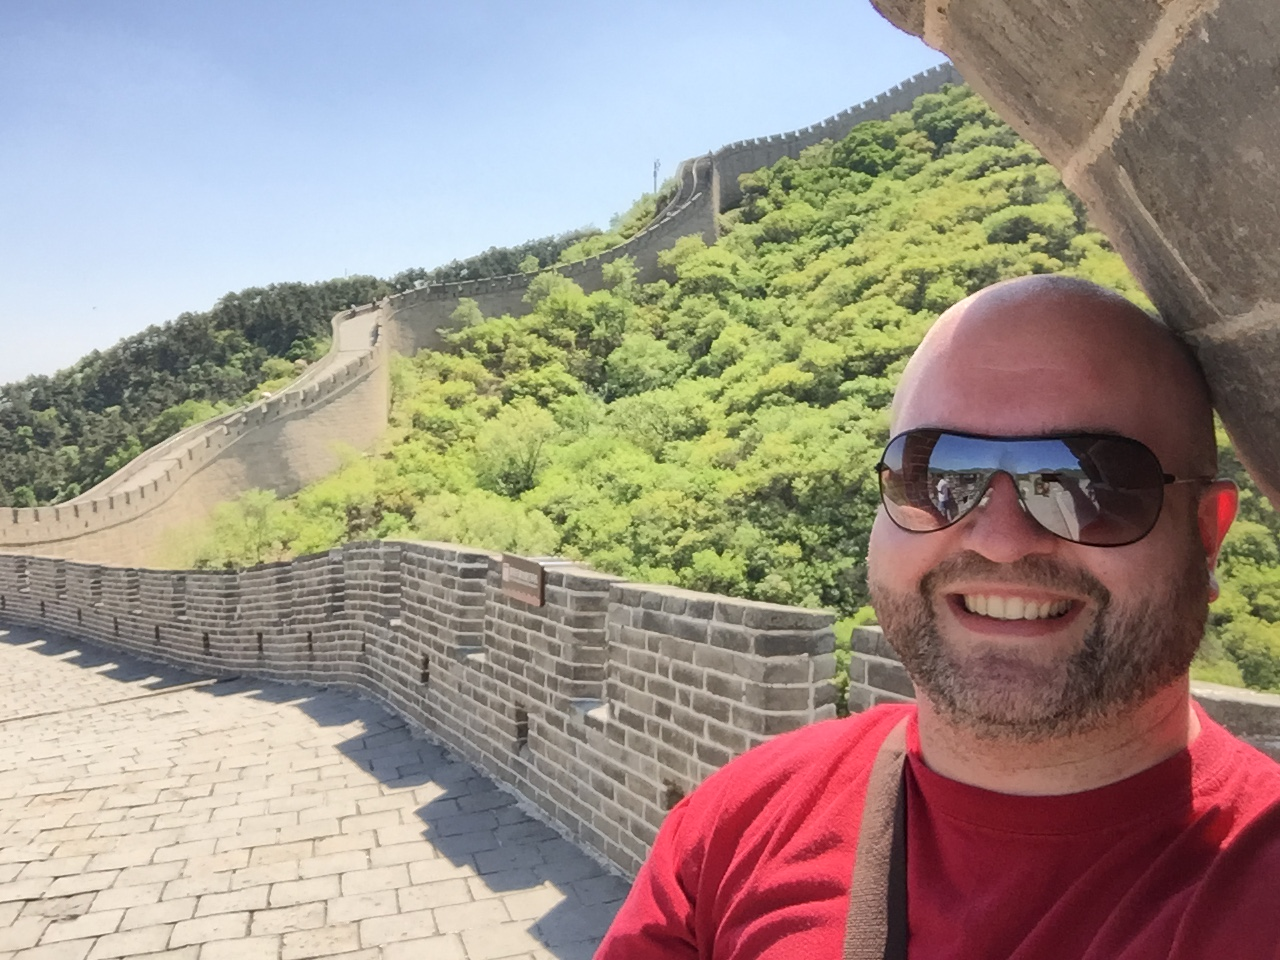 Steve Perkins at Great Wall of China